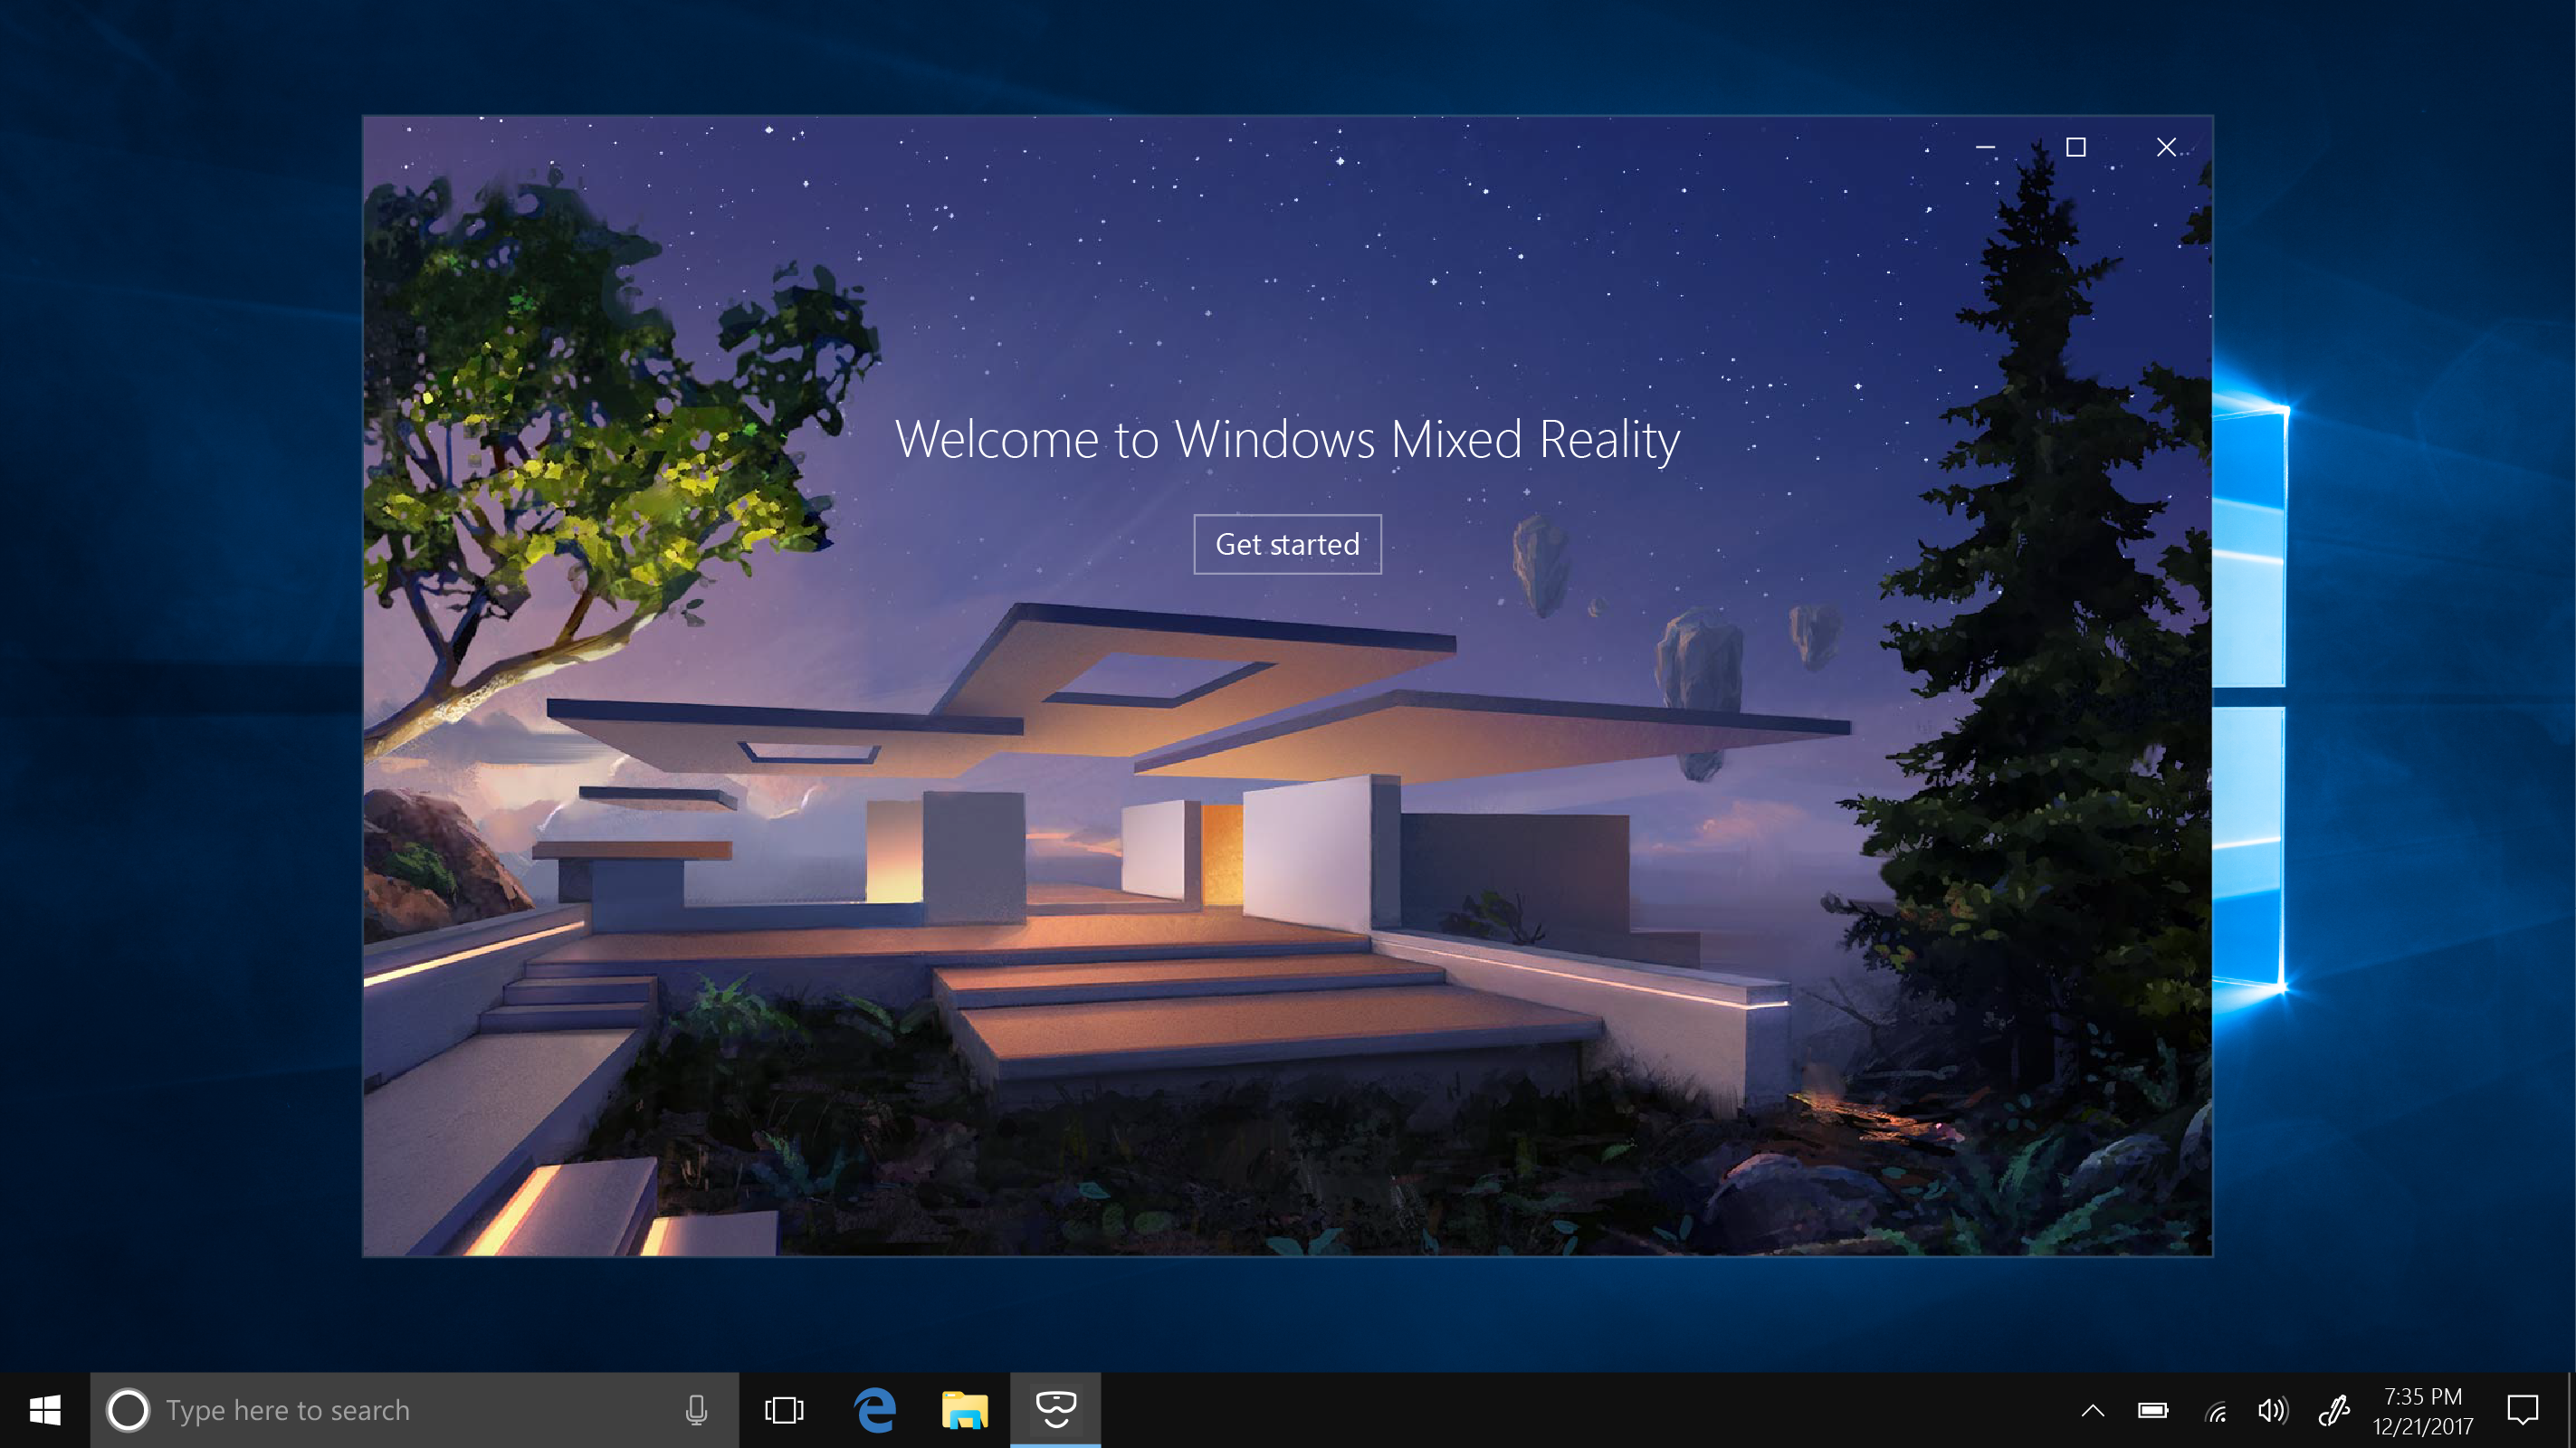 Welcome to Windows Mixed Reality welcome screen running on Windows 10